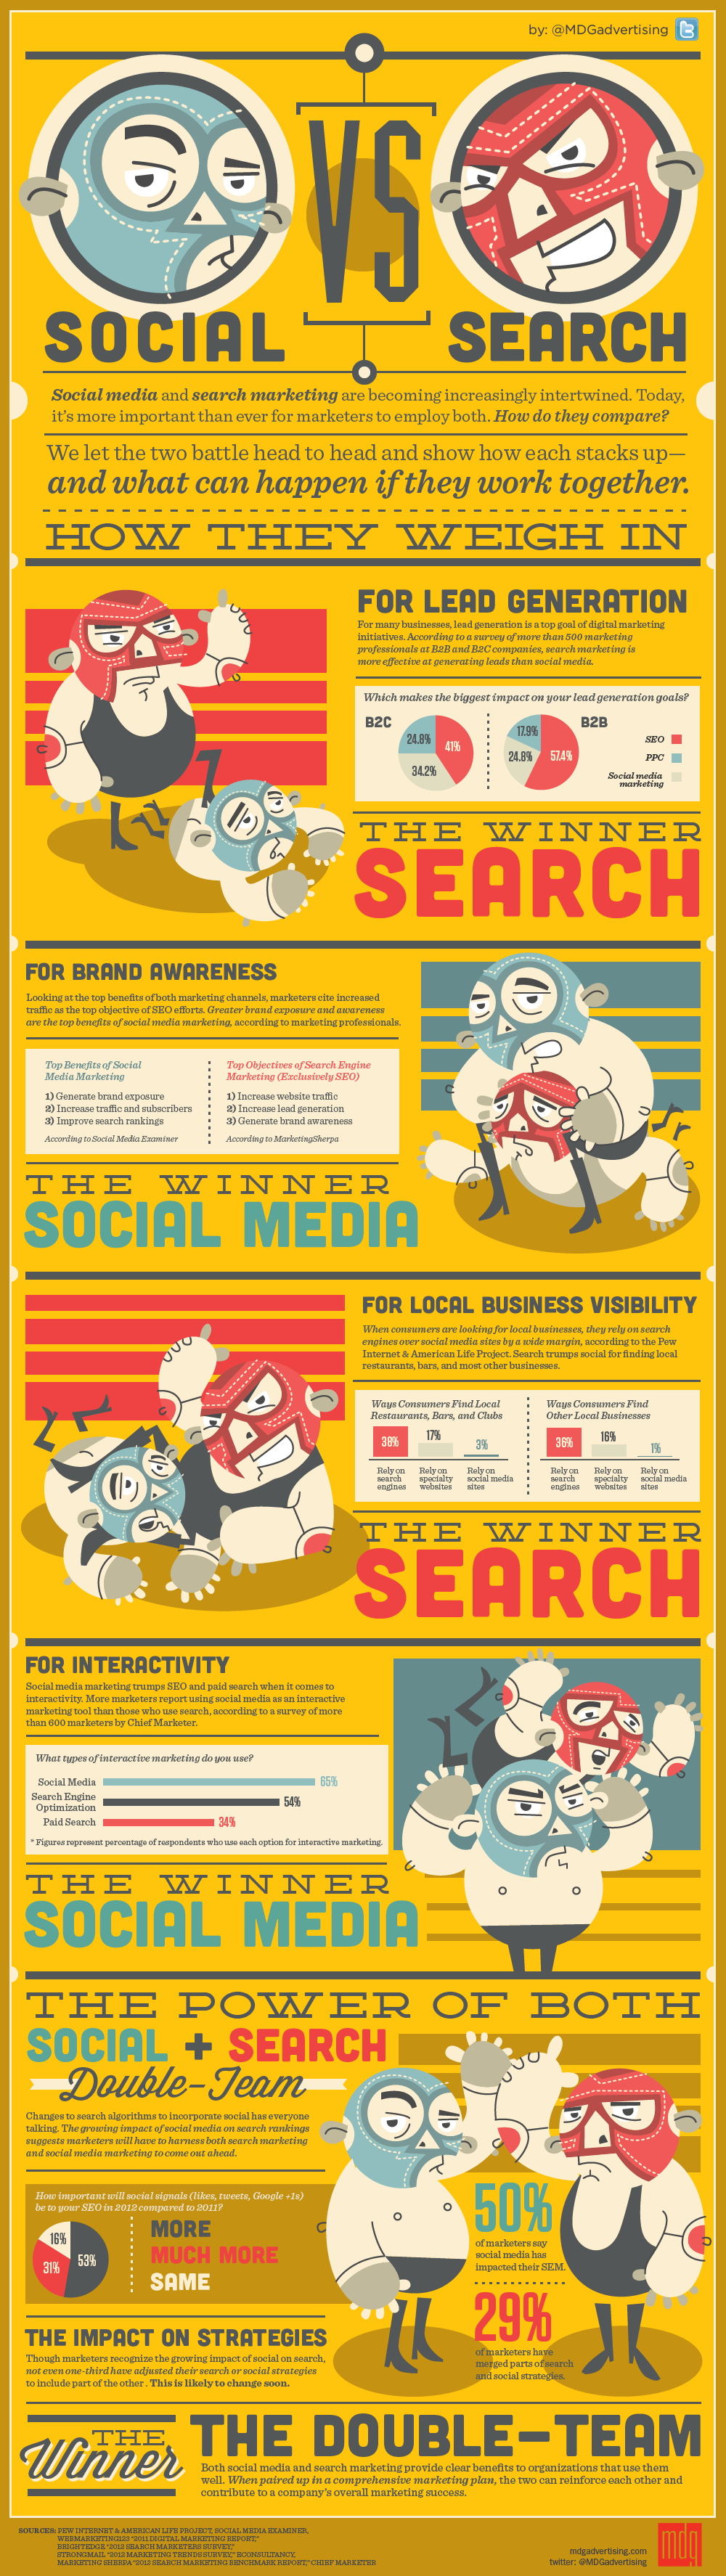 social vs search infographic Social Media  v  Search Marketing